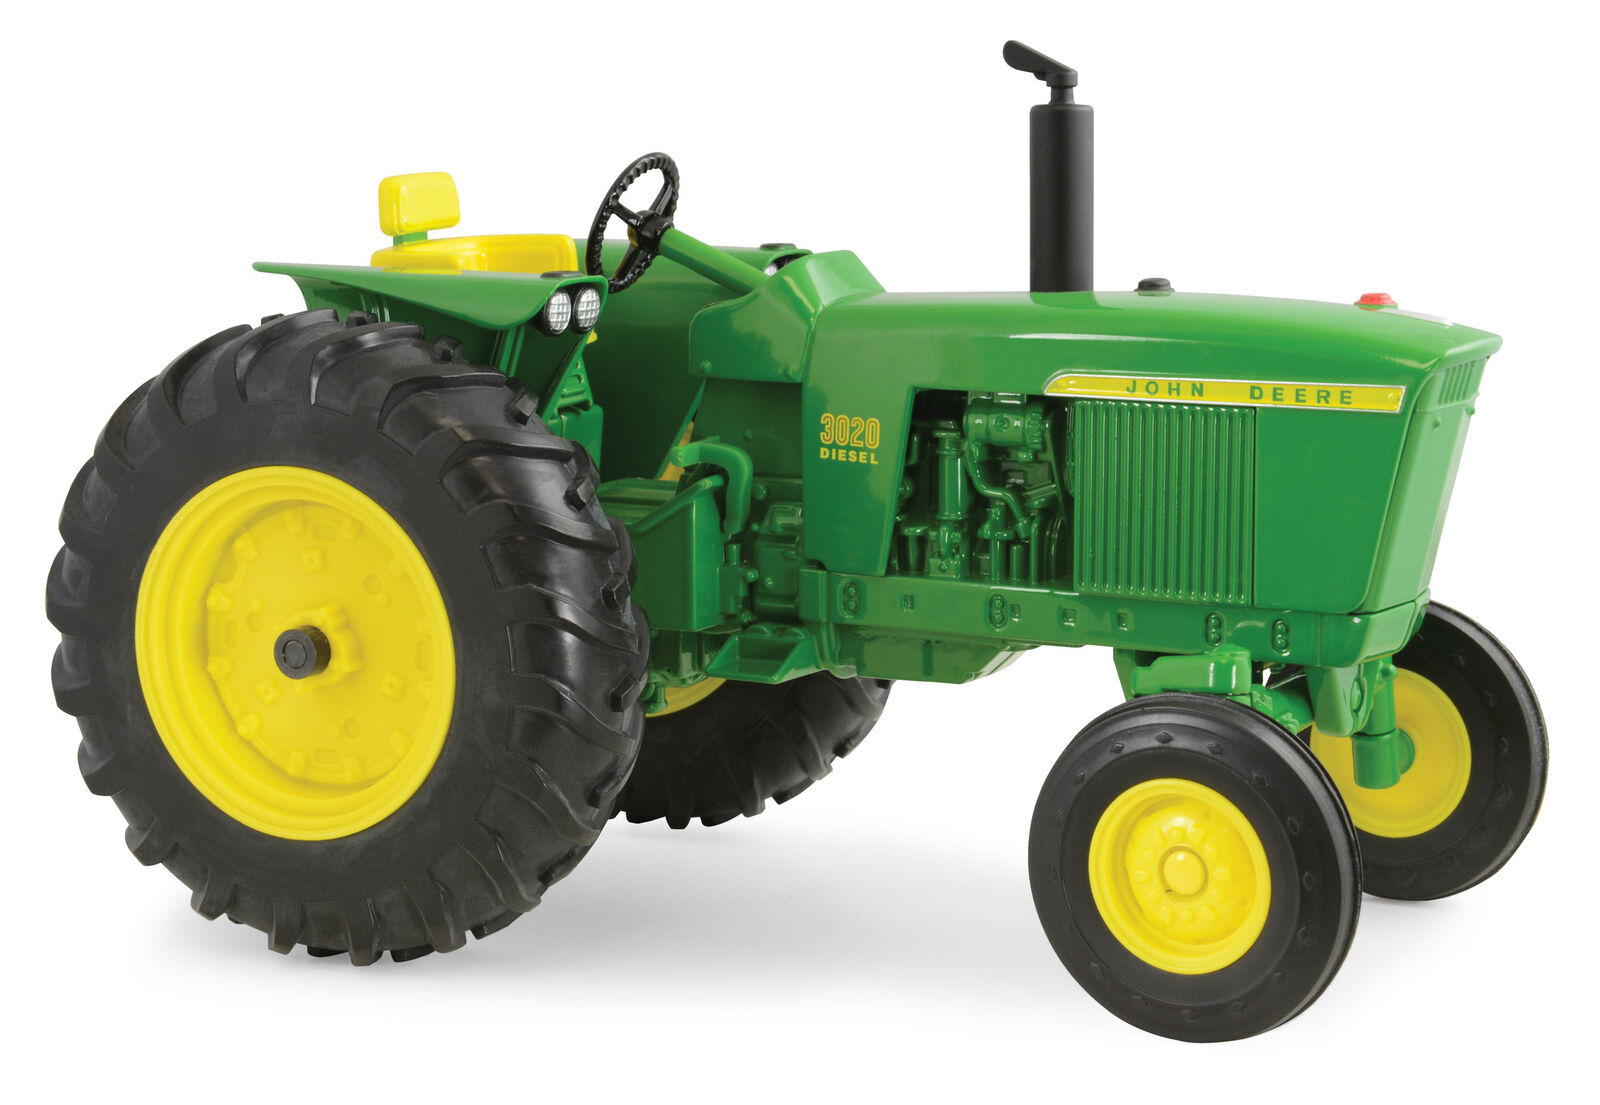 John Deere 3020 Specs Review Price